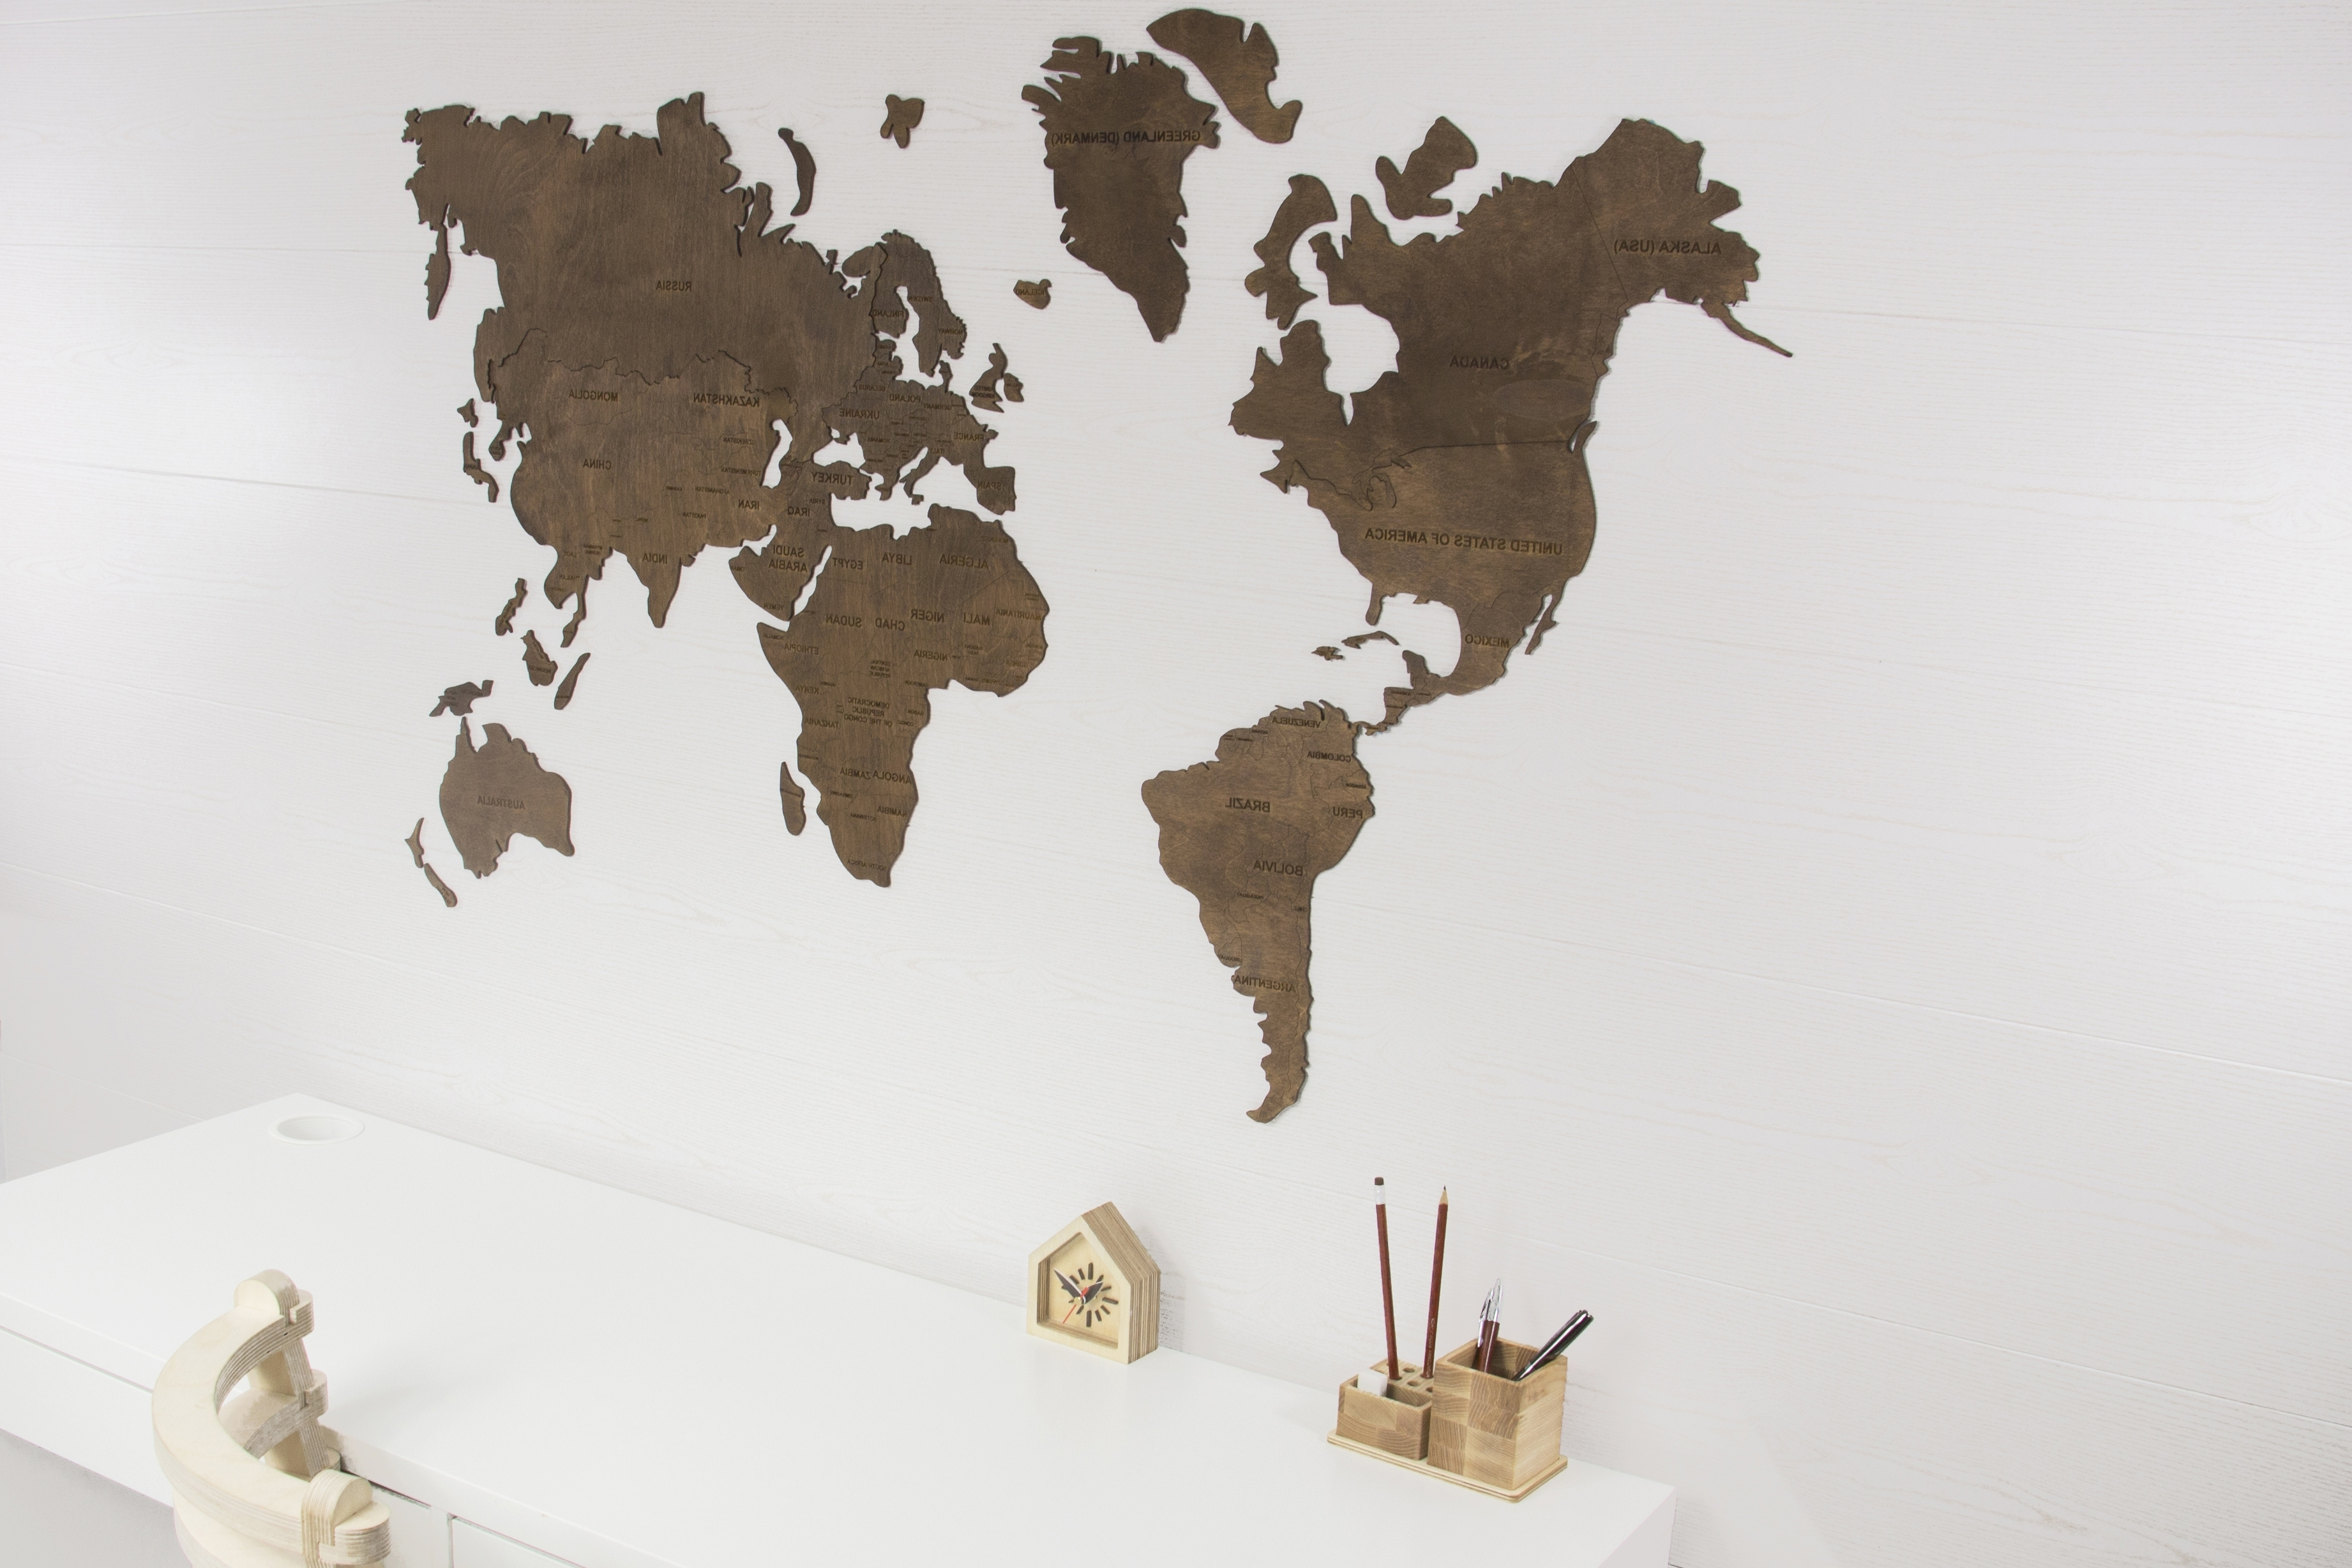 World Map Wall, World Map Hanging, World Map Wooden, World Map Wood Regarding Most Popular World Map Wood Wall Art (View 11 of 15)